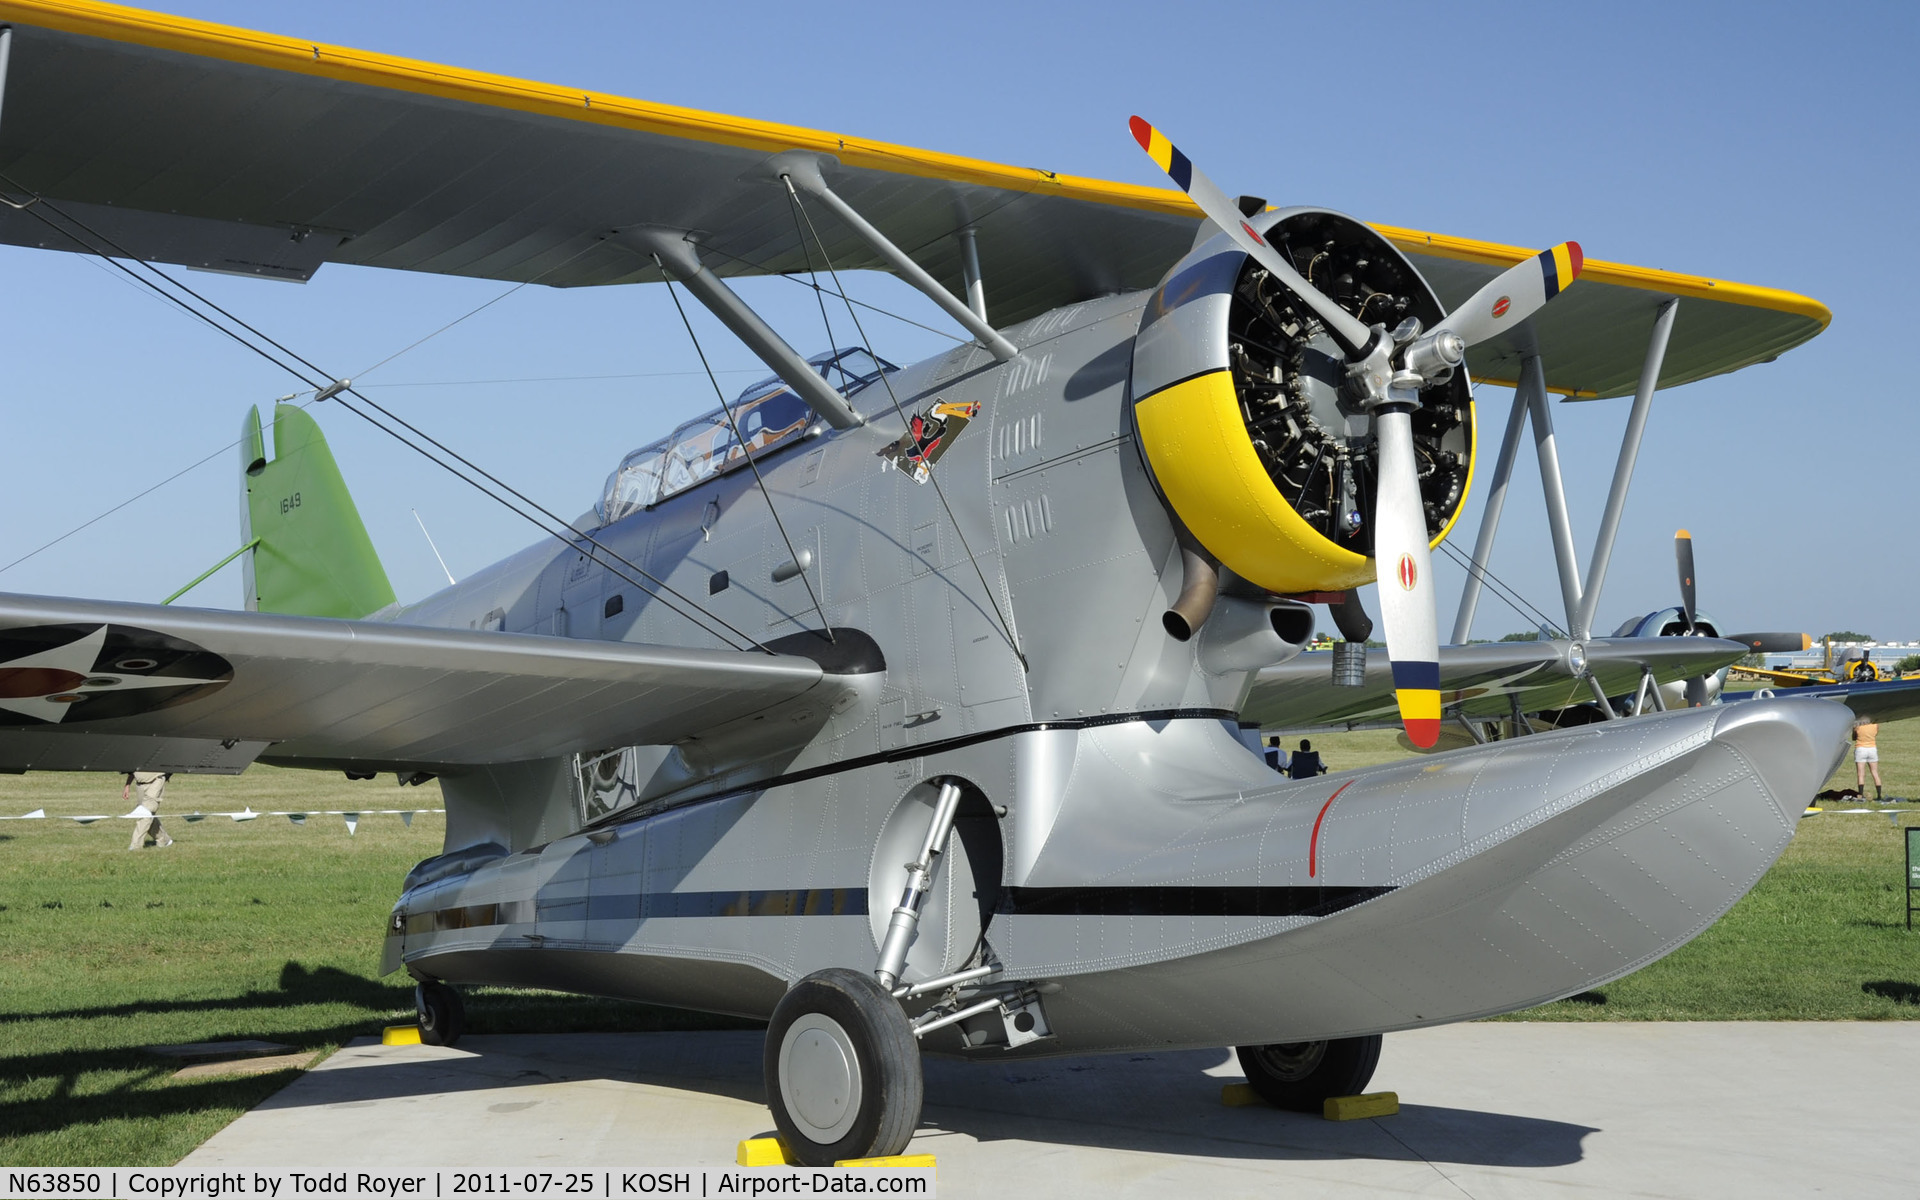 N63850, 1939 Grumman J2F-4 C/N 1649, Last airworthy aircraft that was present at Pearl Harbor when attacked by the Japanese.